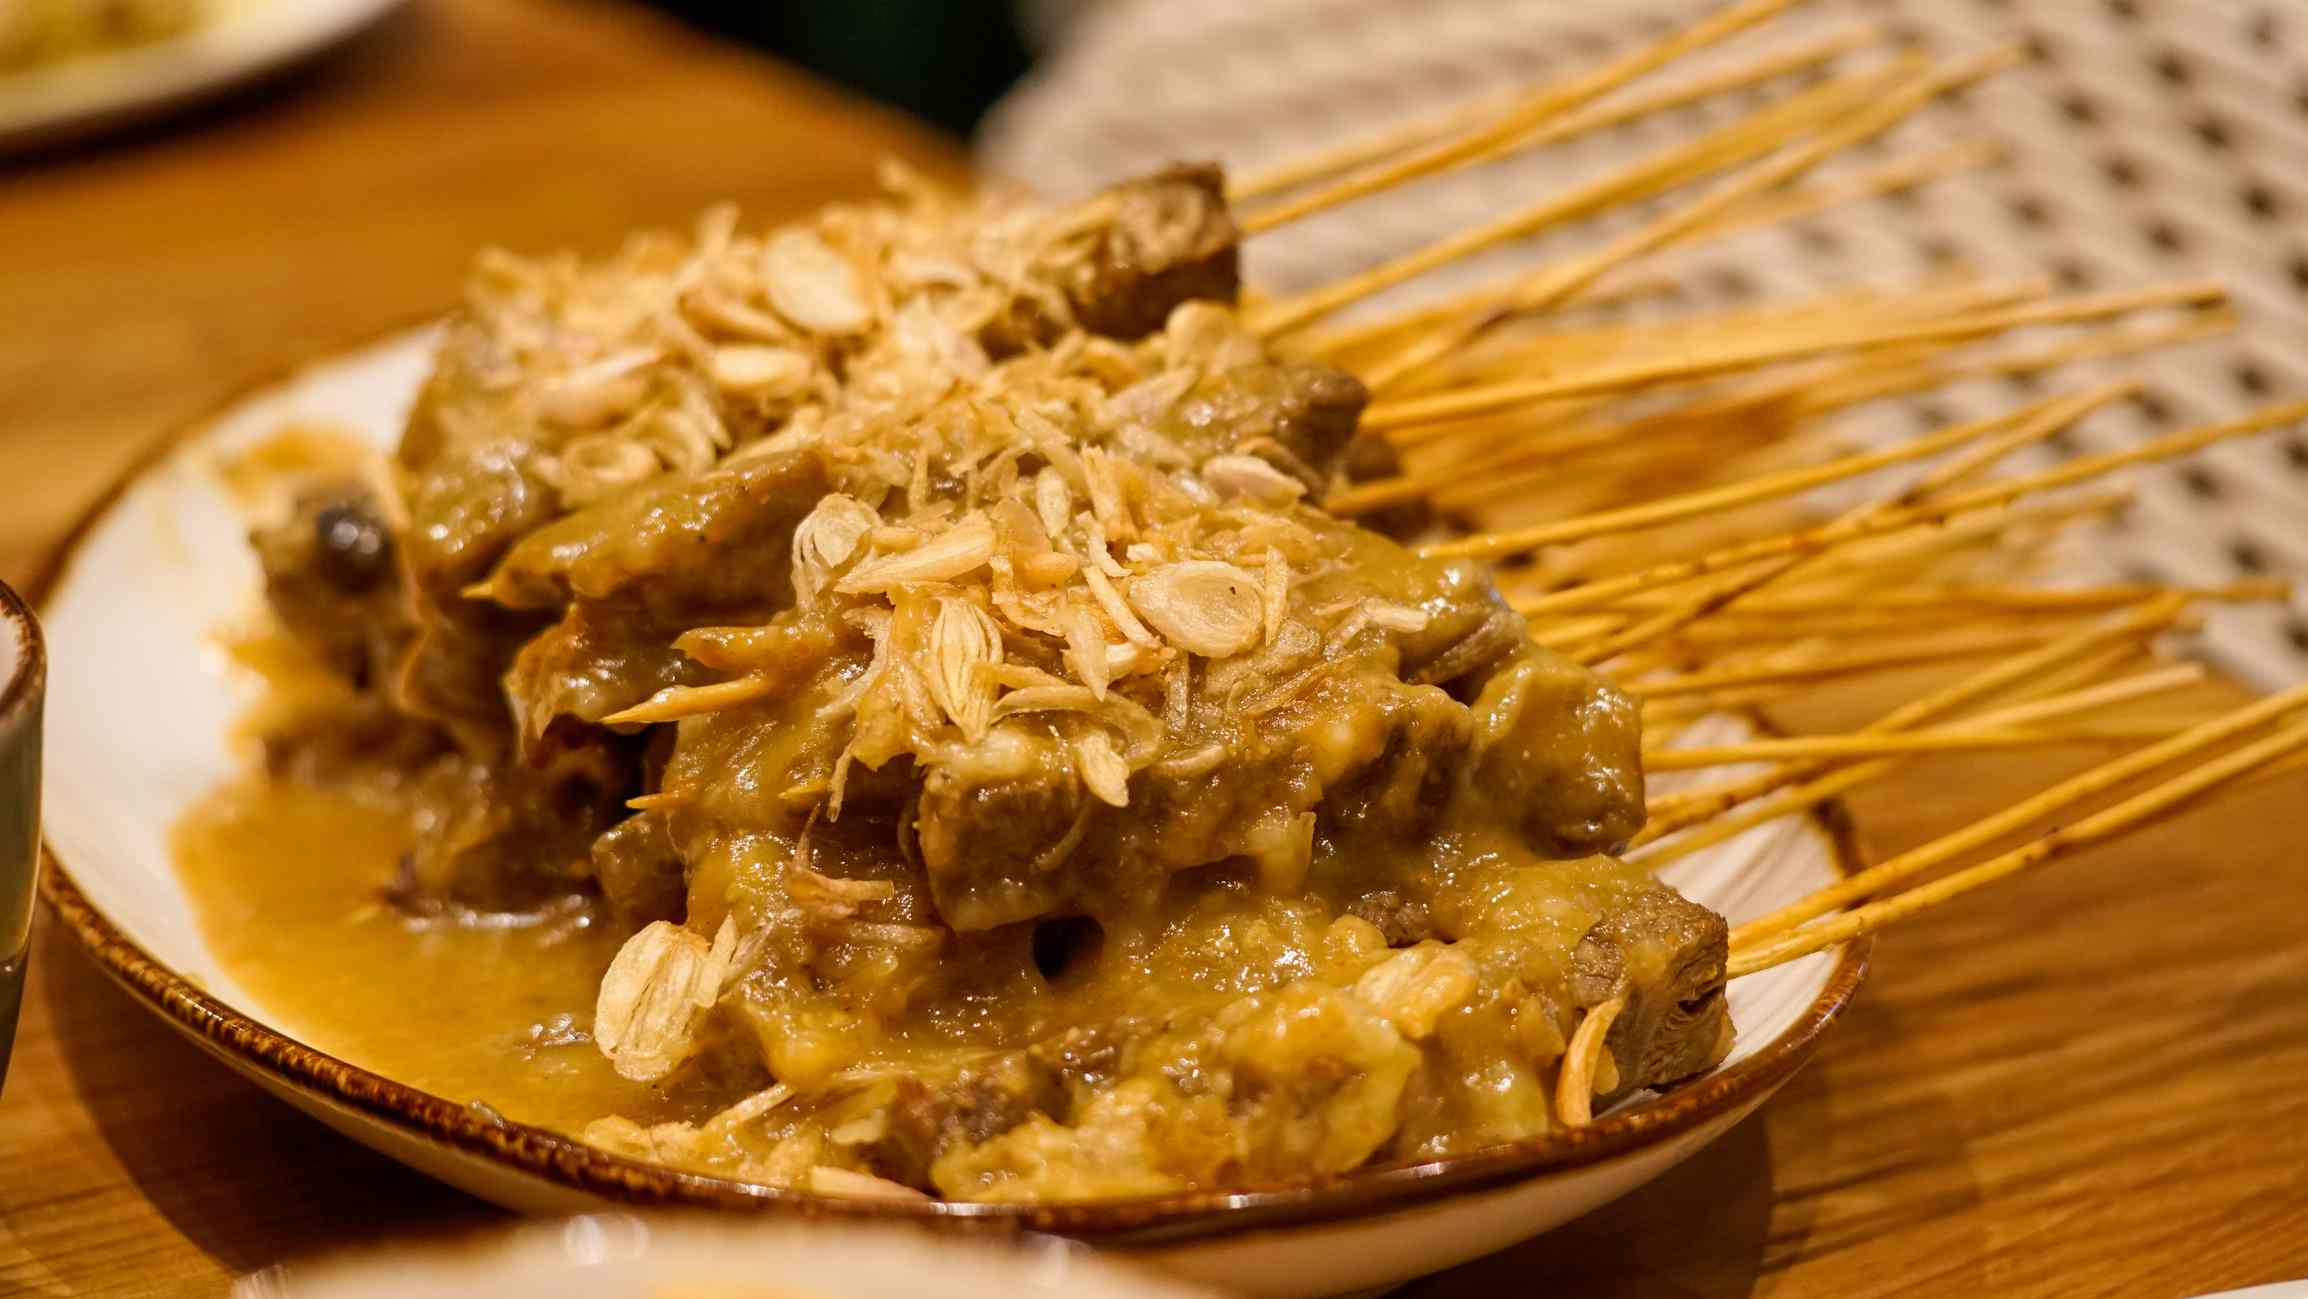 Sticks of sate Padang on a plate